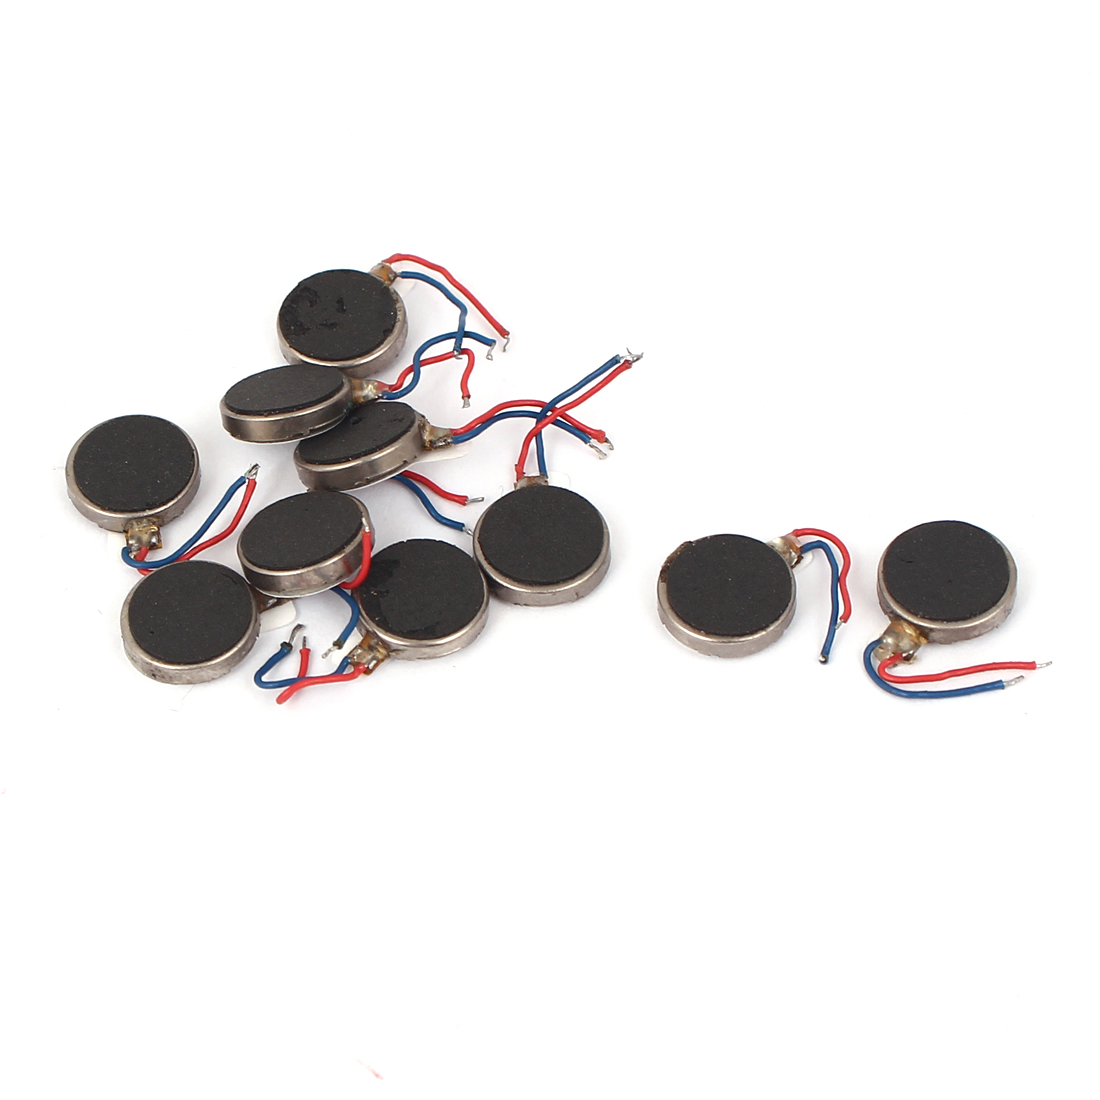 DC 3V 12000RPM Two Wired 10mm x 3mm Coin Cell Phone Vibration Motor 10pcs